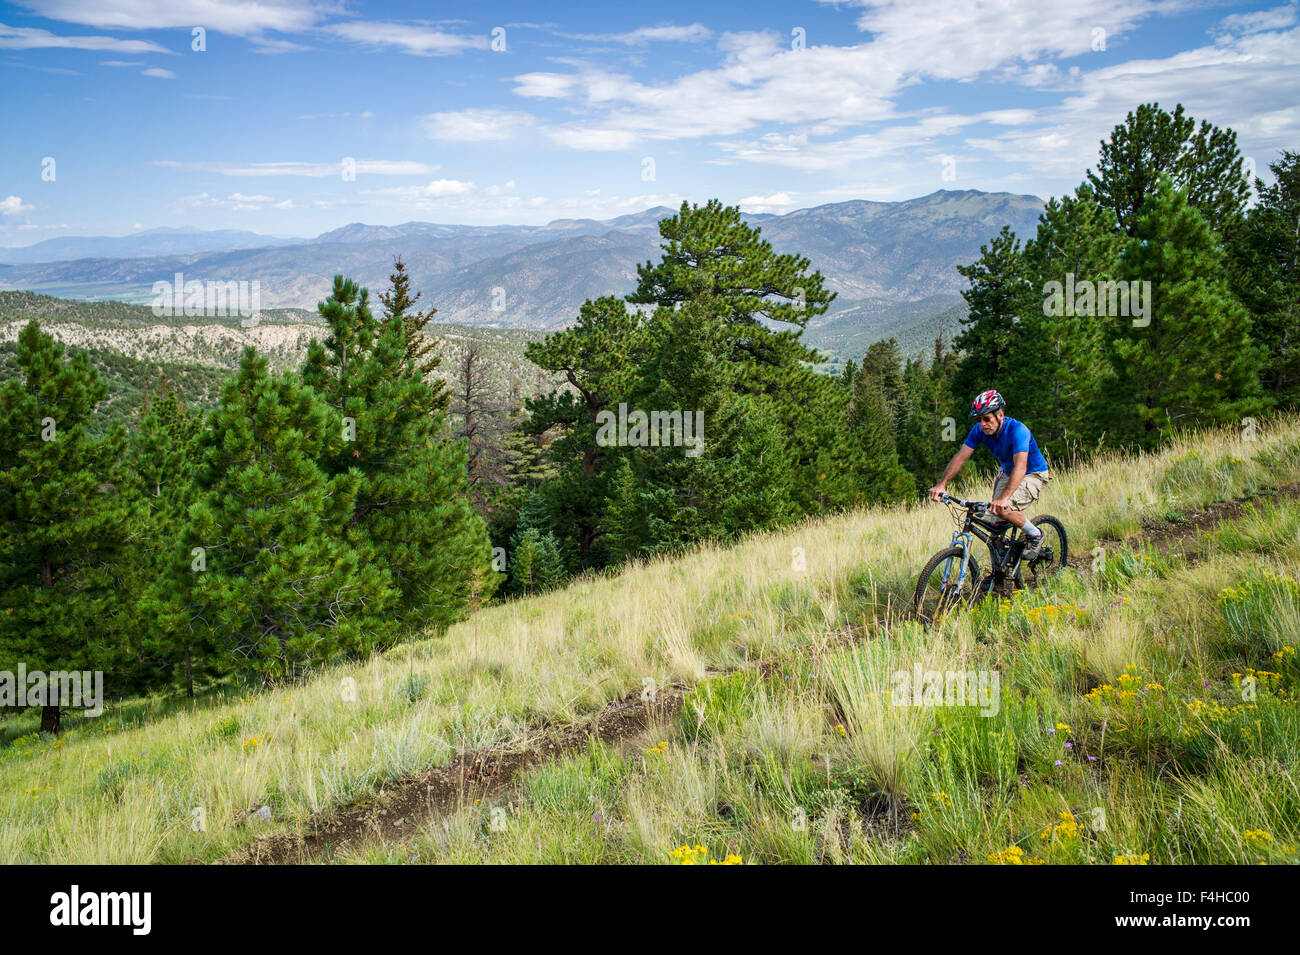 Male mountain bike rider on Little Rainbow Trail, near Bear Creek, Salida, Colorado, USA - Stock Image